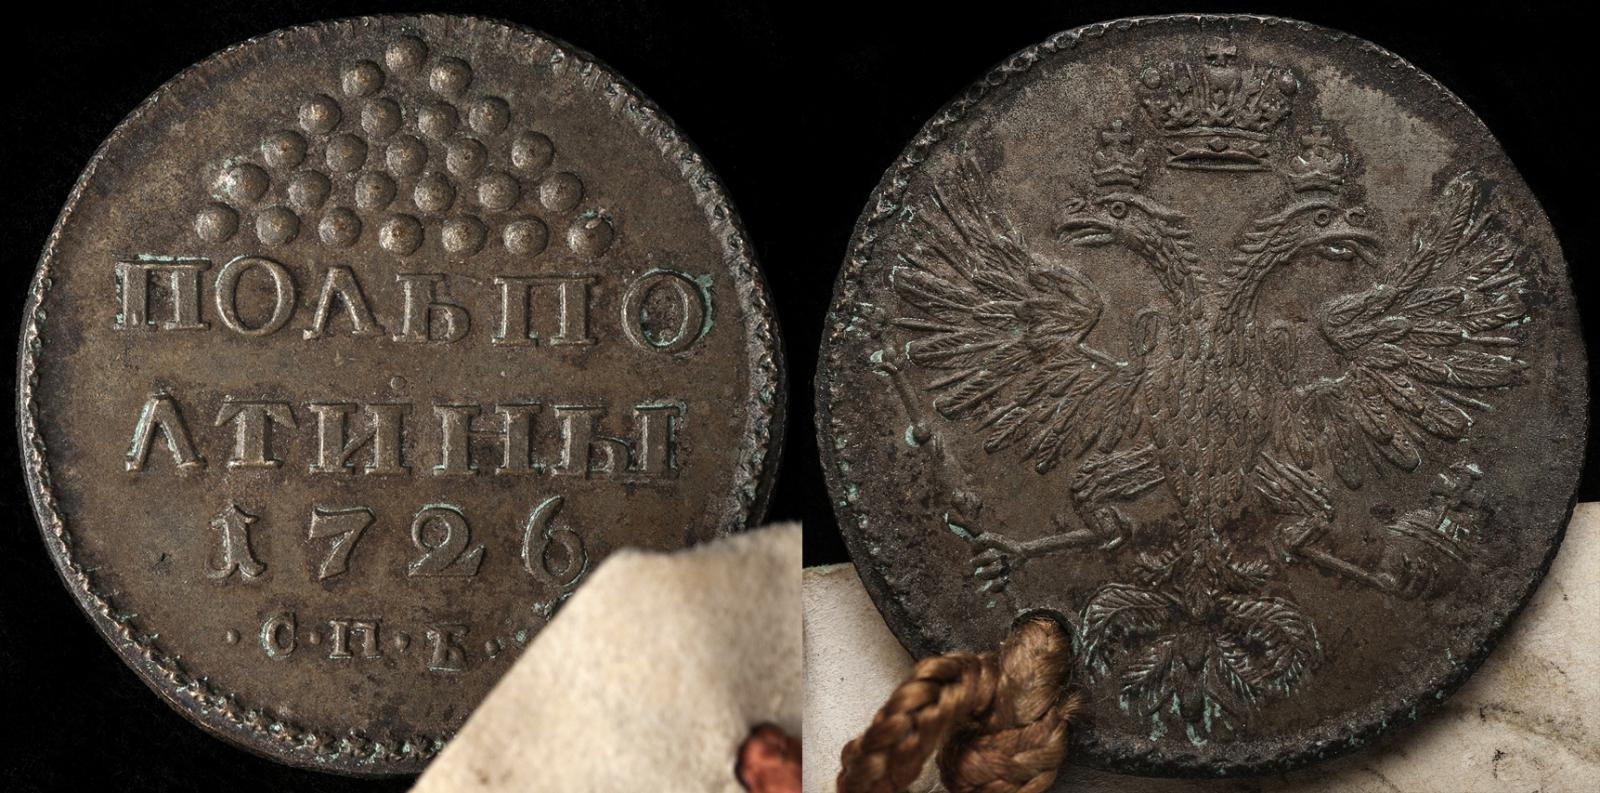 1726%20polpoltiny%20test%20coin%202.jpg